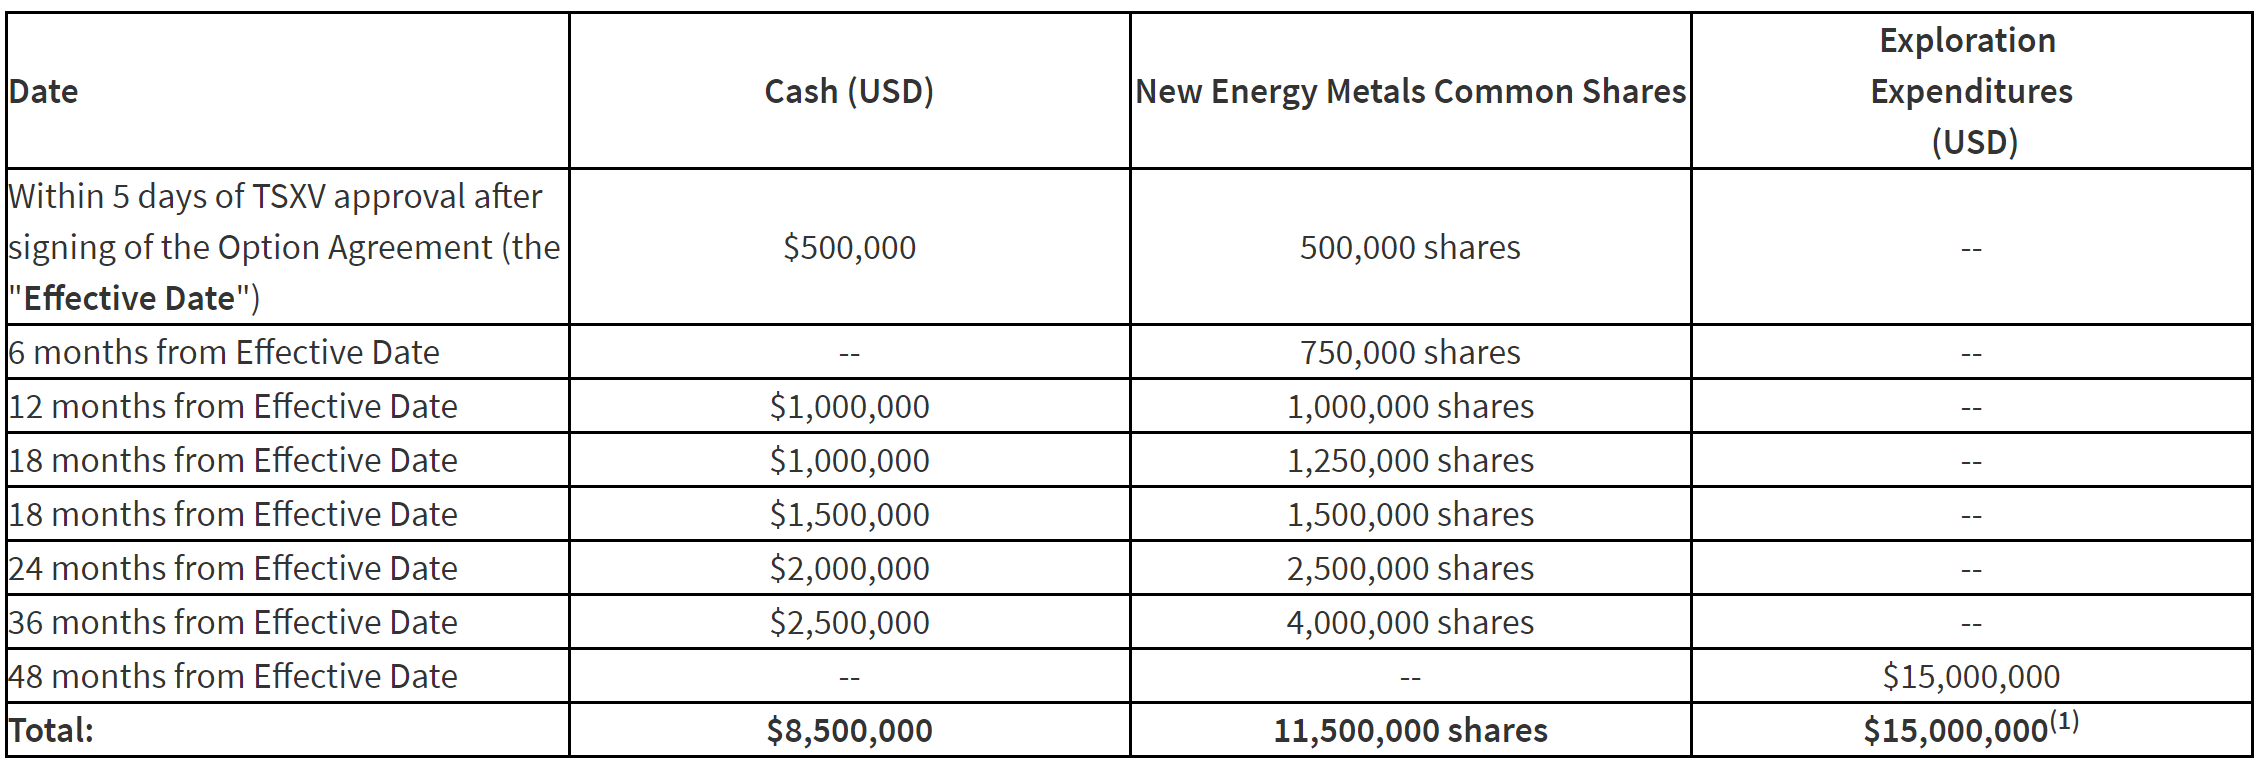 Note: (1) There are no annual or monthly requirements in respect of the exploration expenditures, provided that the total USD $15,000,000 in exploration expenditures must be incurred by New Energy Metals within the Option Period.